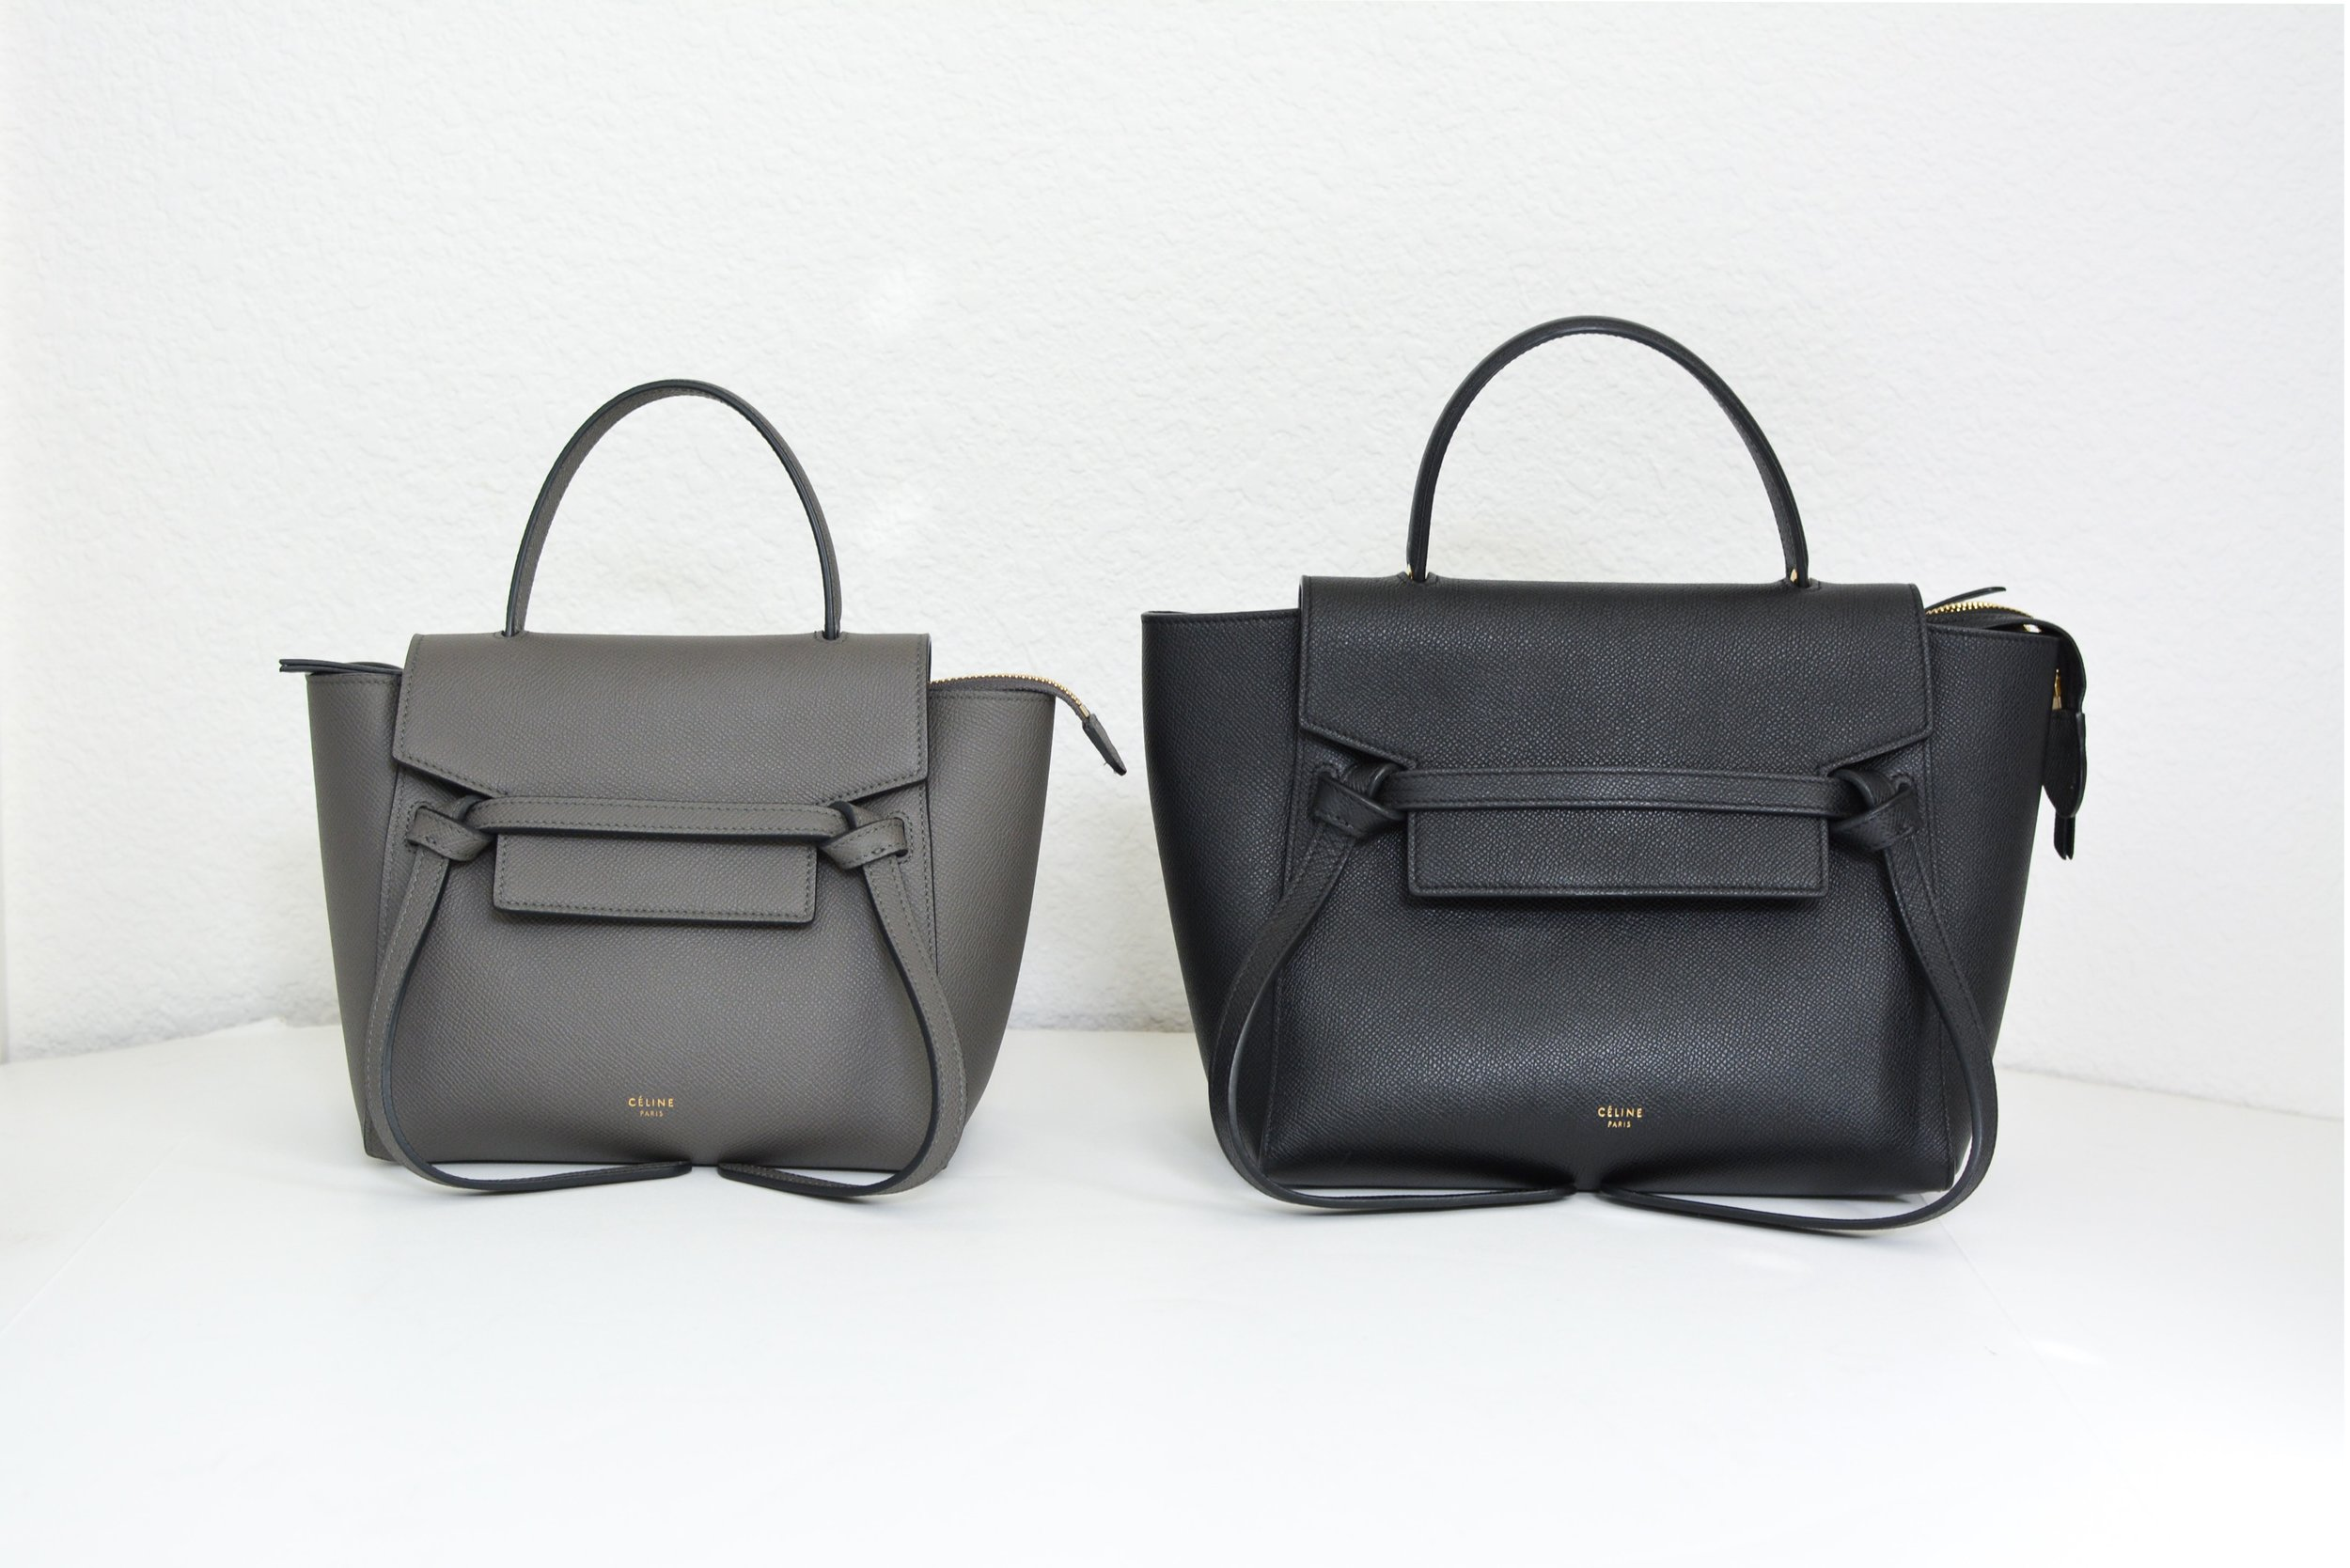 Celine Nano Belt Bag Review Comparison To The Micro Belt Bag Updated Jan 2019 Fairly Curated